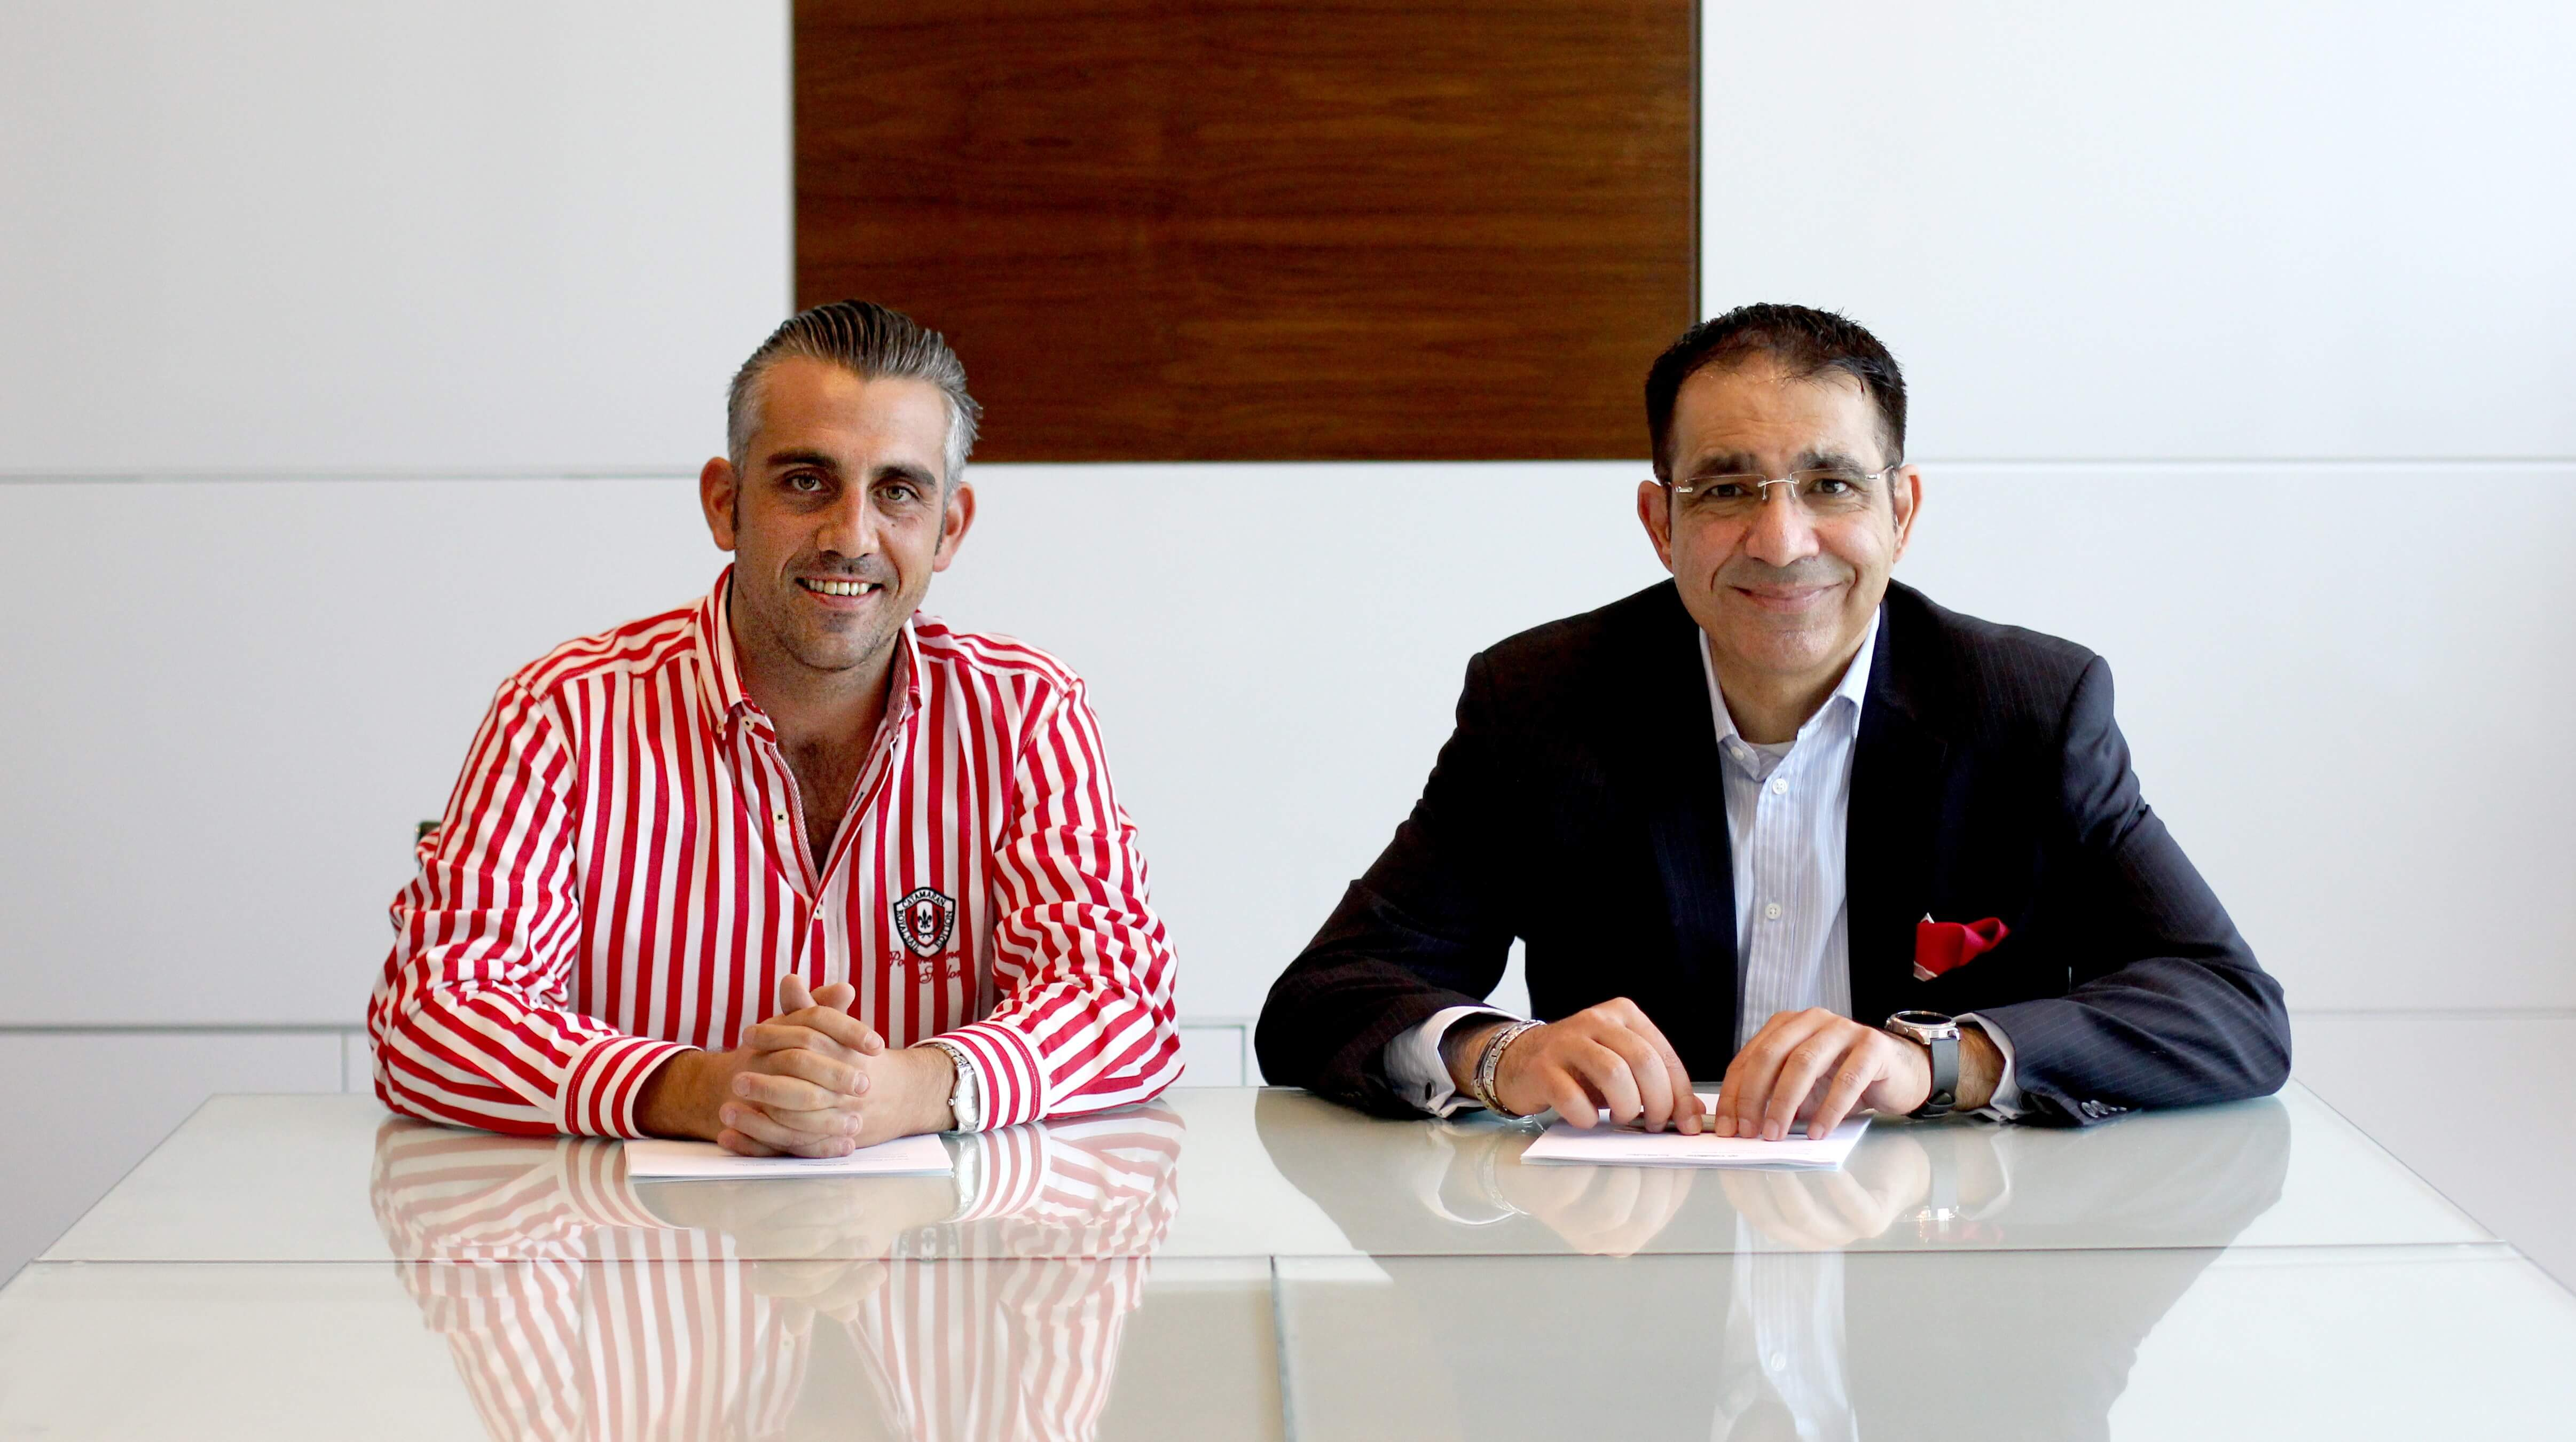 Amena Automotive CEO and Yalla Motor General Manager